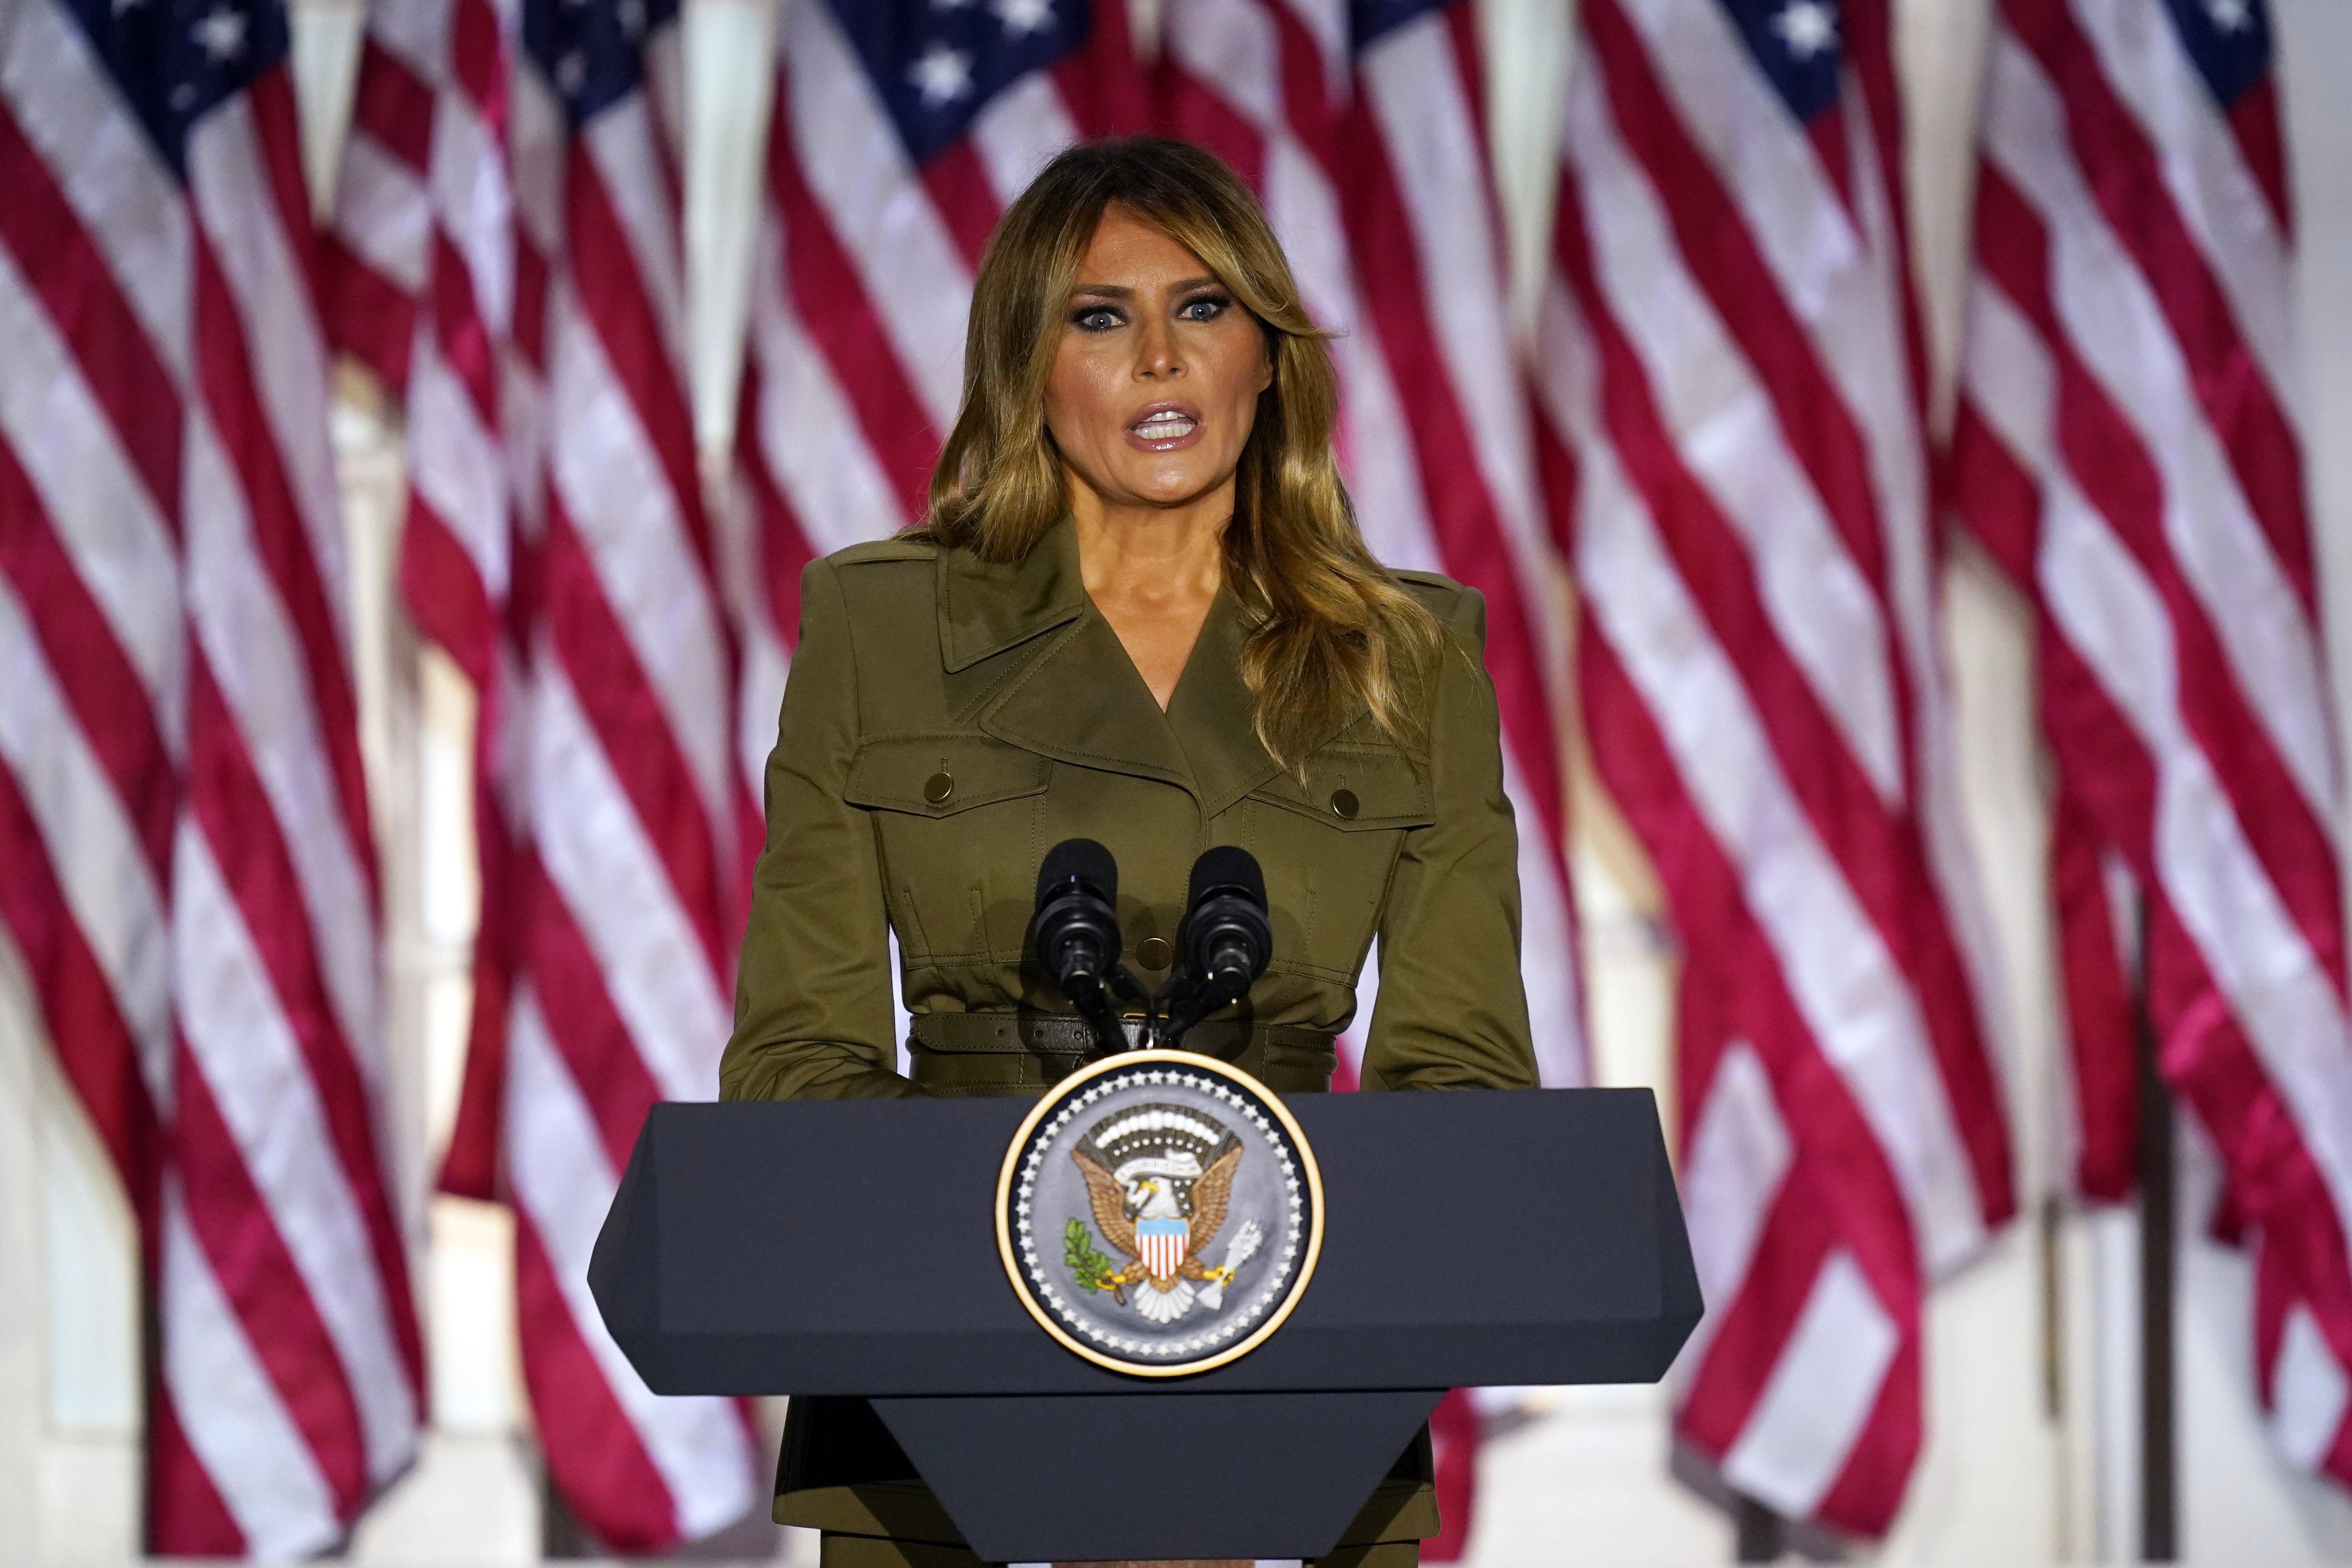 Melania Trump S Task At Republican Convention Reassure Voters And Not Cause Any Trouble